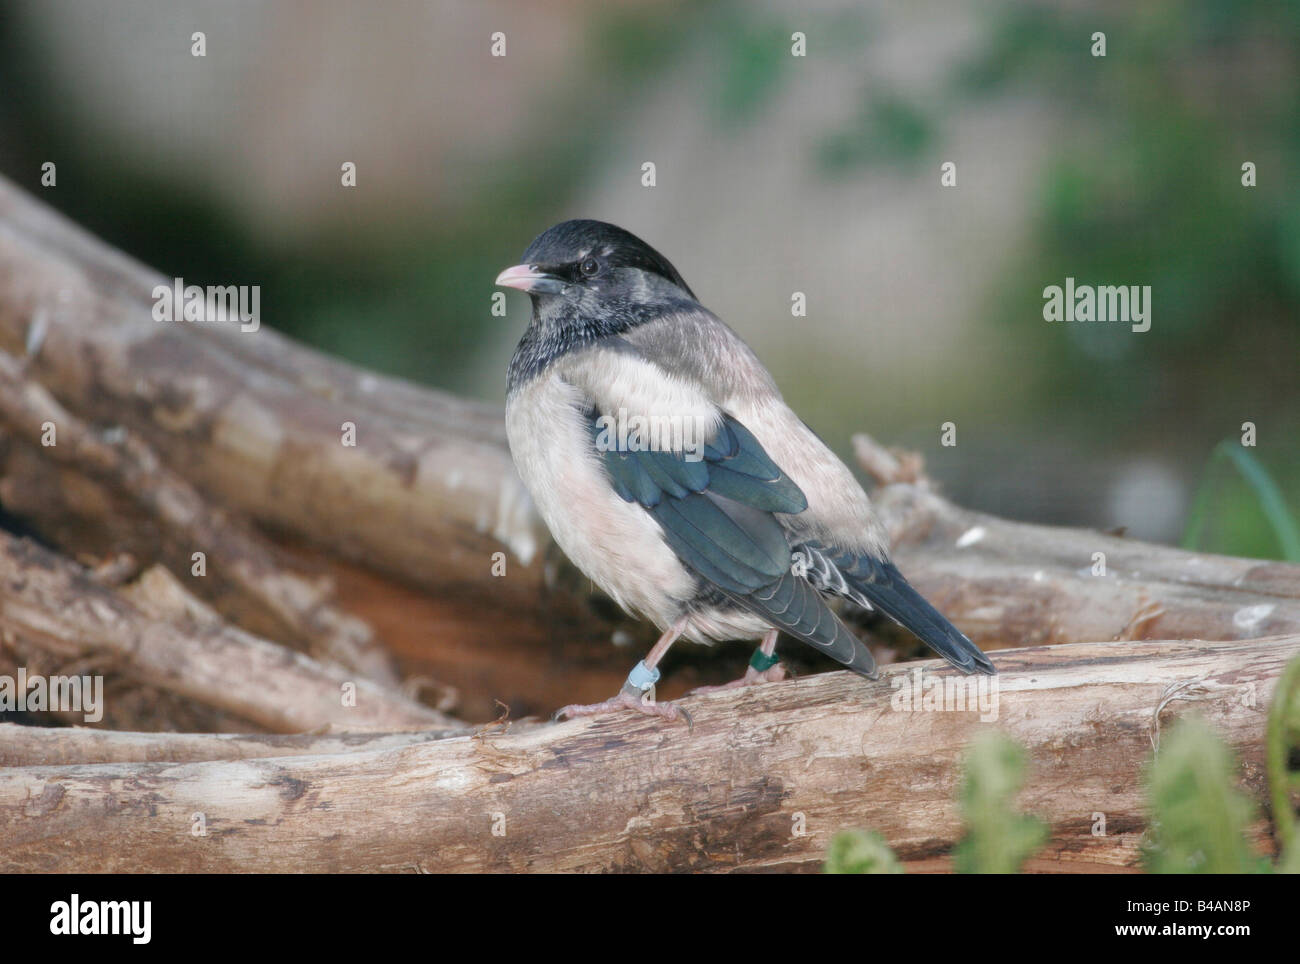 zoology / animals, avian / bird, passerine bird, Rosy Starling (Sturnus roseus), sitting on tree trunk, Walsrode, - Stock Image